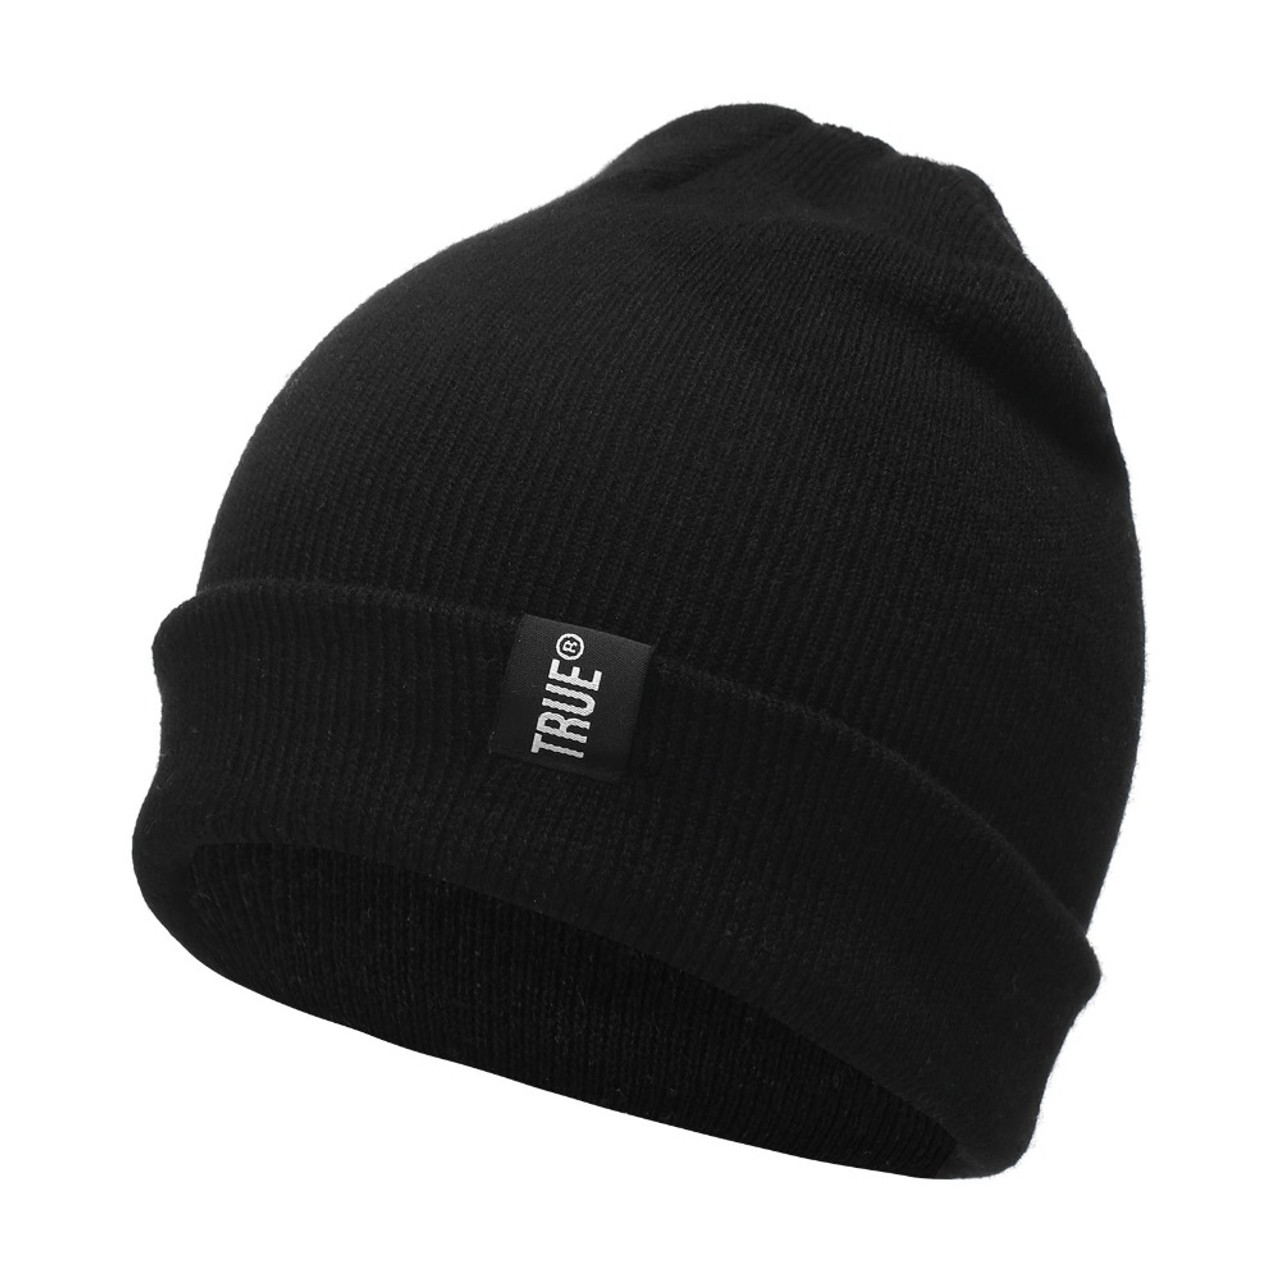 c9af02535e8e5 ... Letter True Casual Beanies for Men Women Fashion Knitted Winter Hat  Solid Color Hip-hop ...